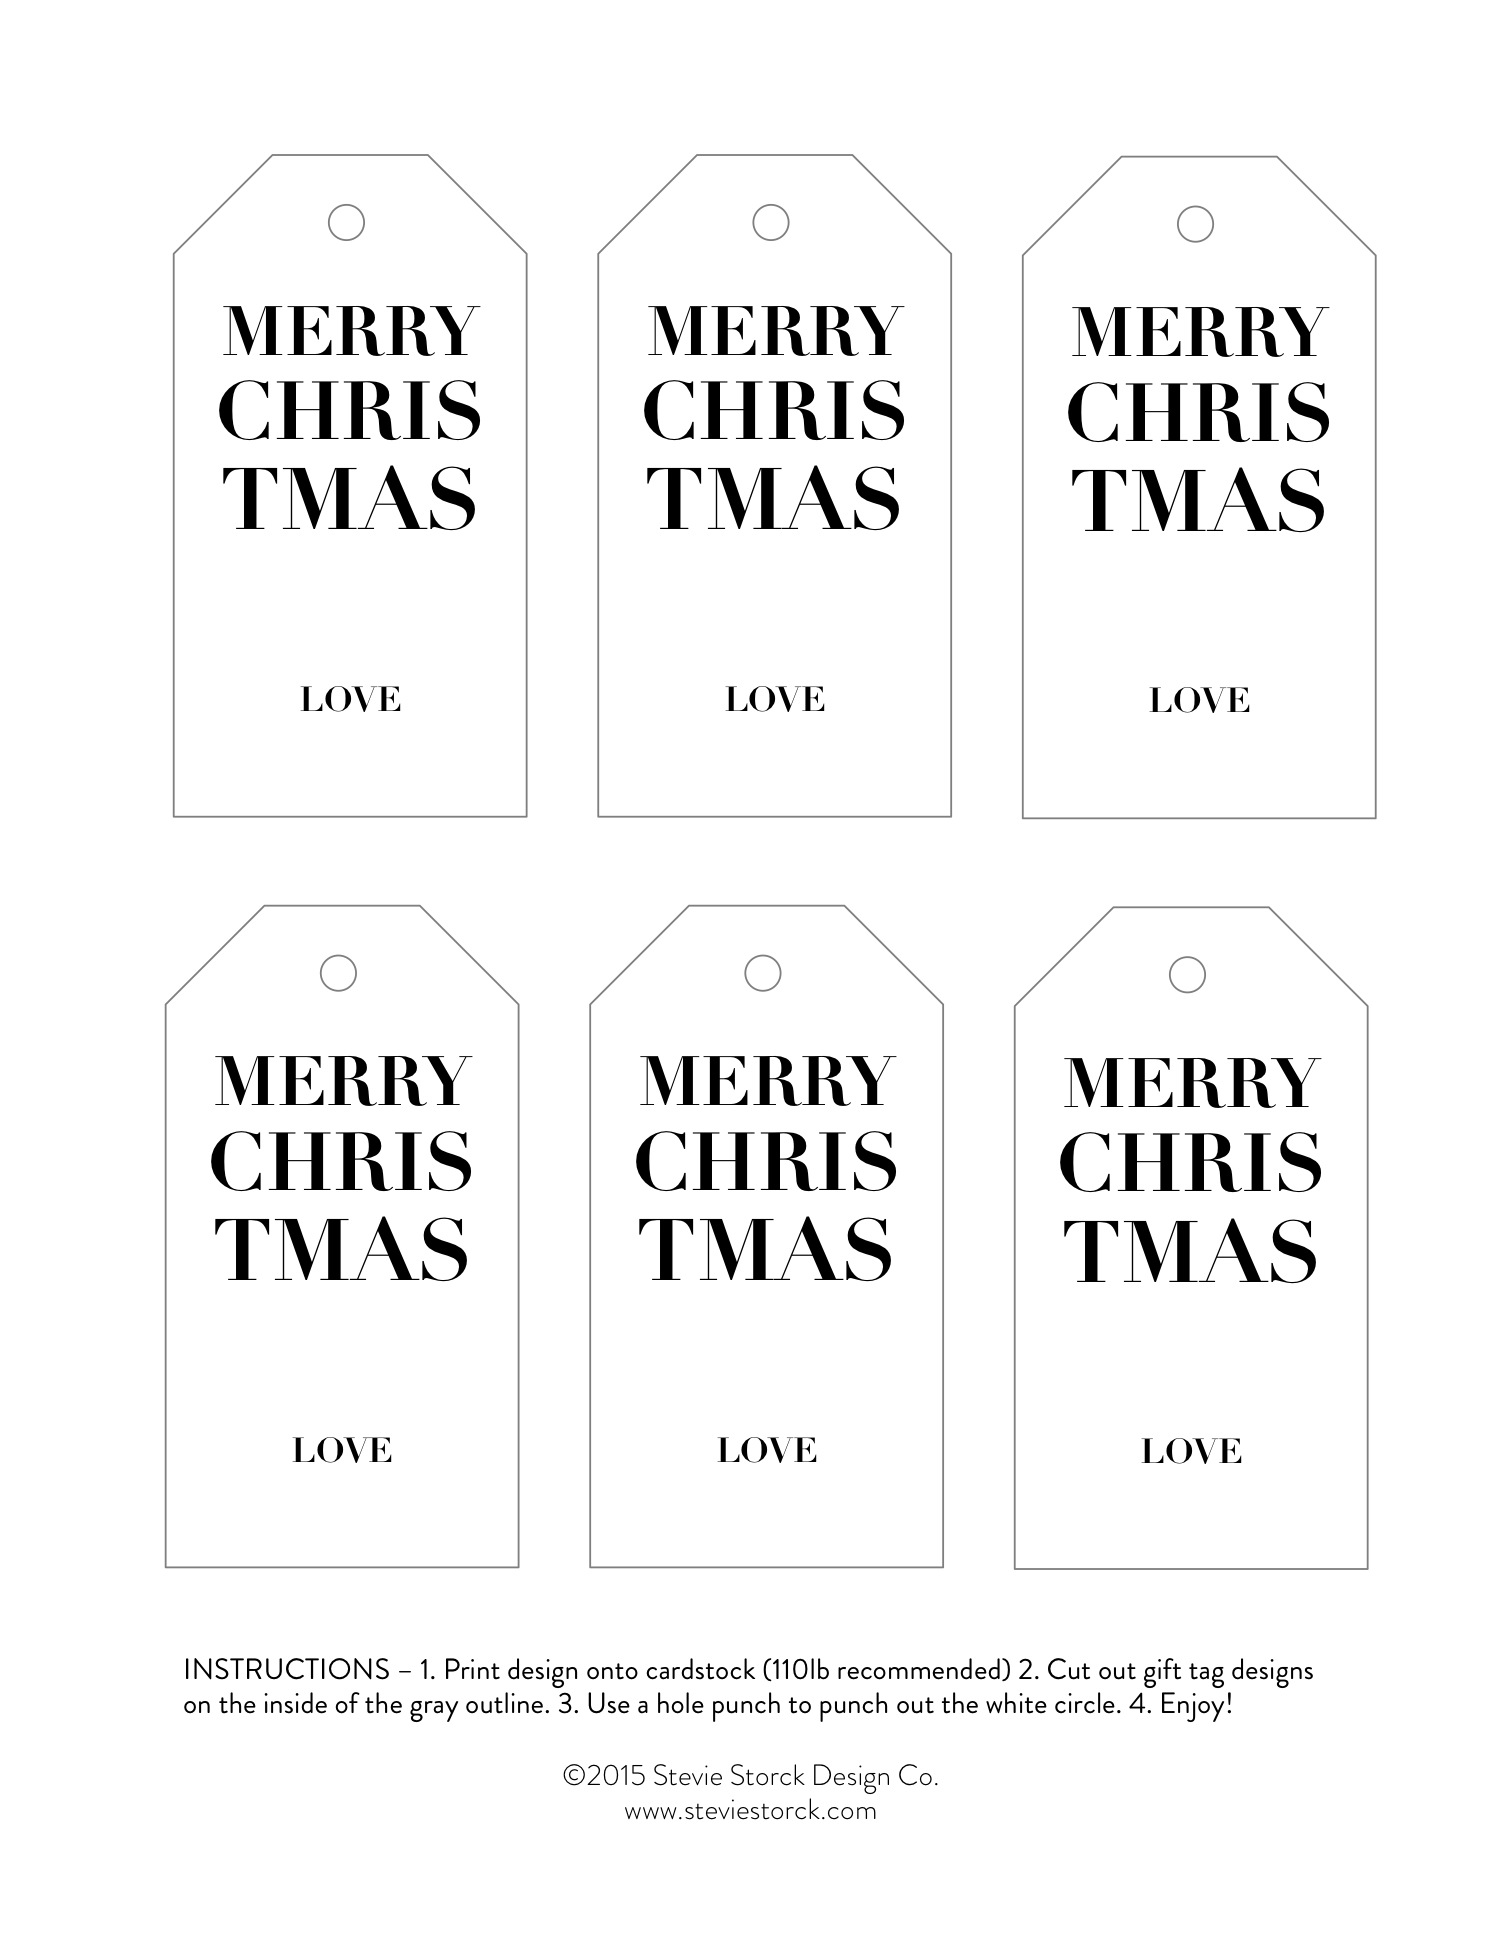 Free Printable Christmas Gift Tag Design from Stevie Storck Design Co. Minimal, chic & festive!